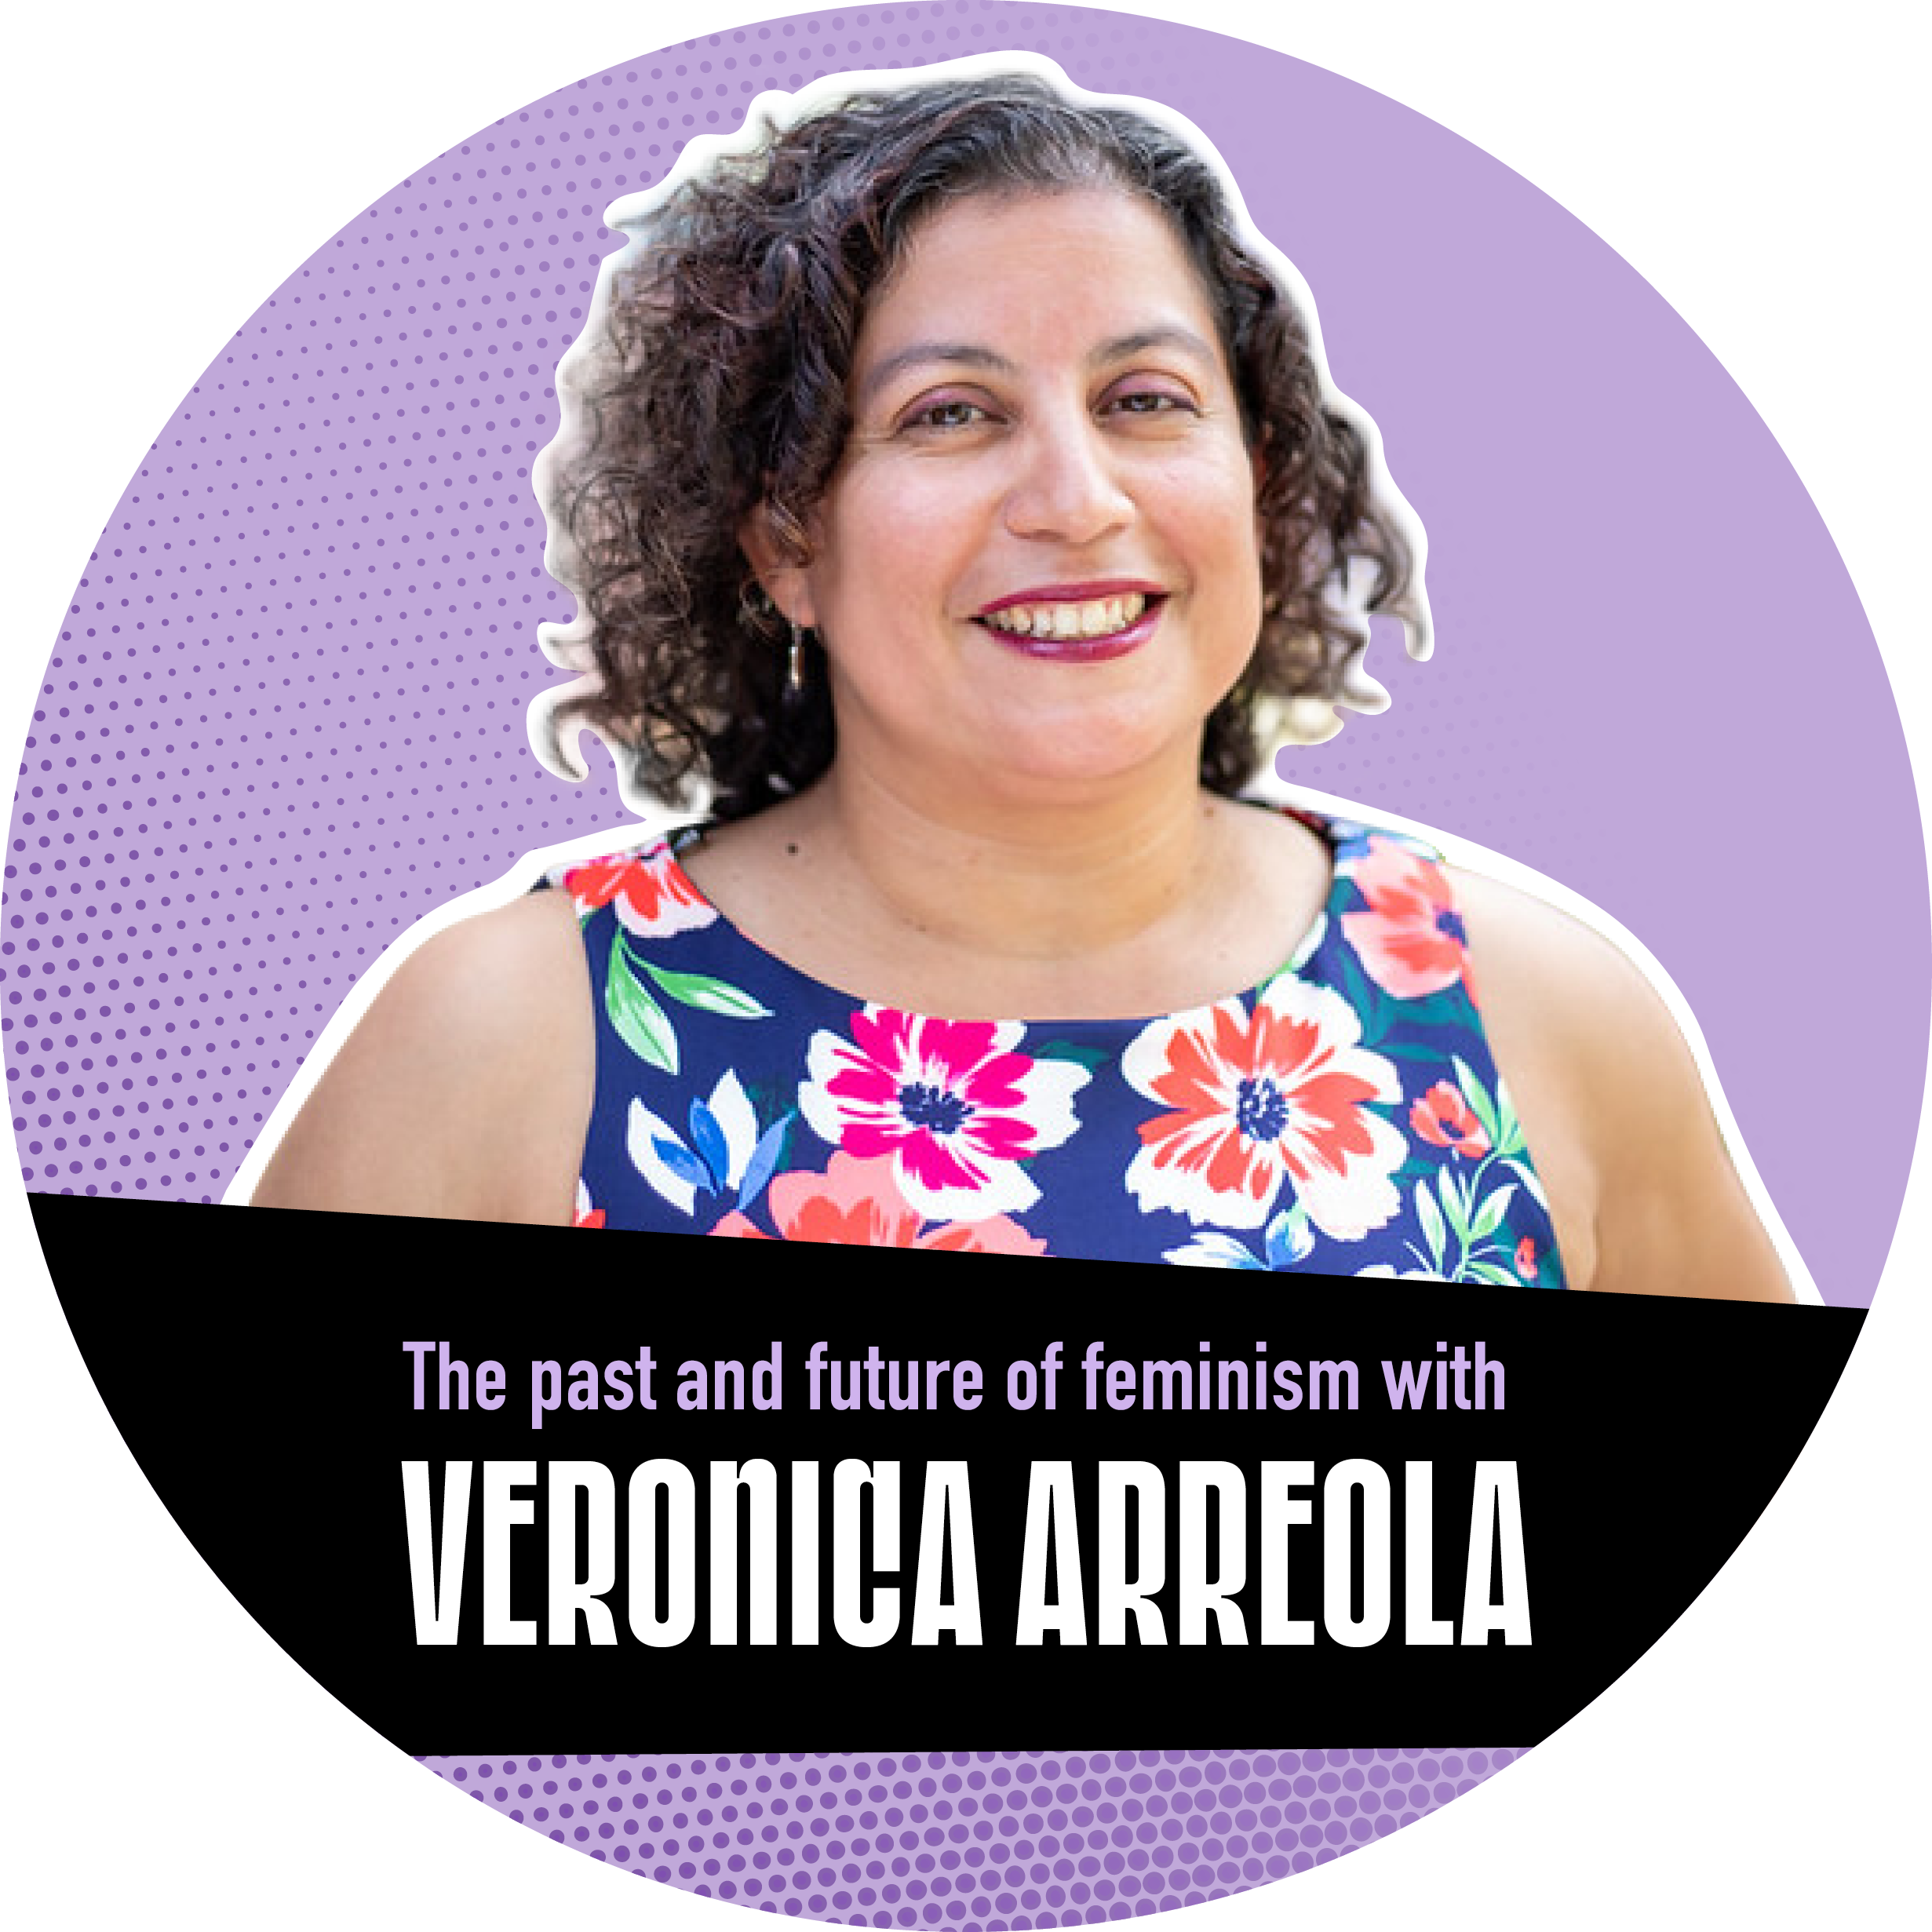 """Portrait of Veronica Arreola on a purple background with a banner that reads """"The past and future of feminism with Veronica Arreola"""""""